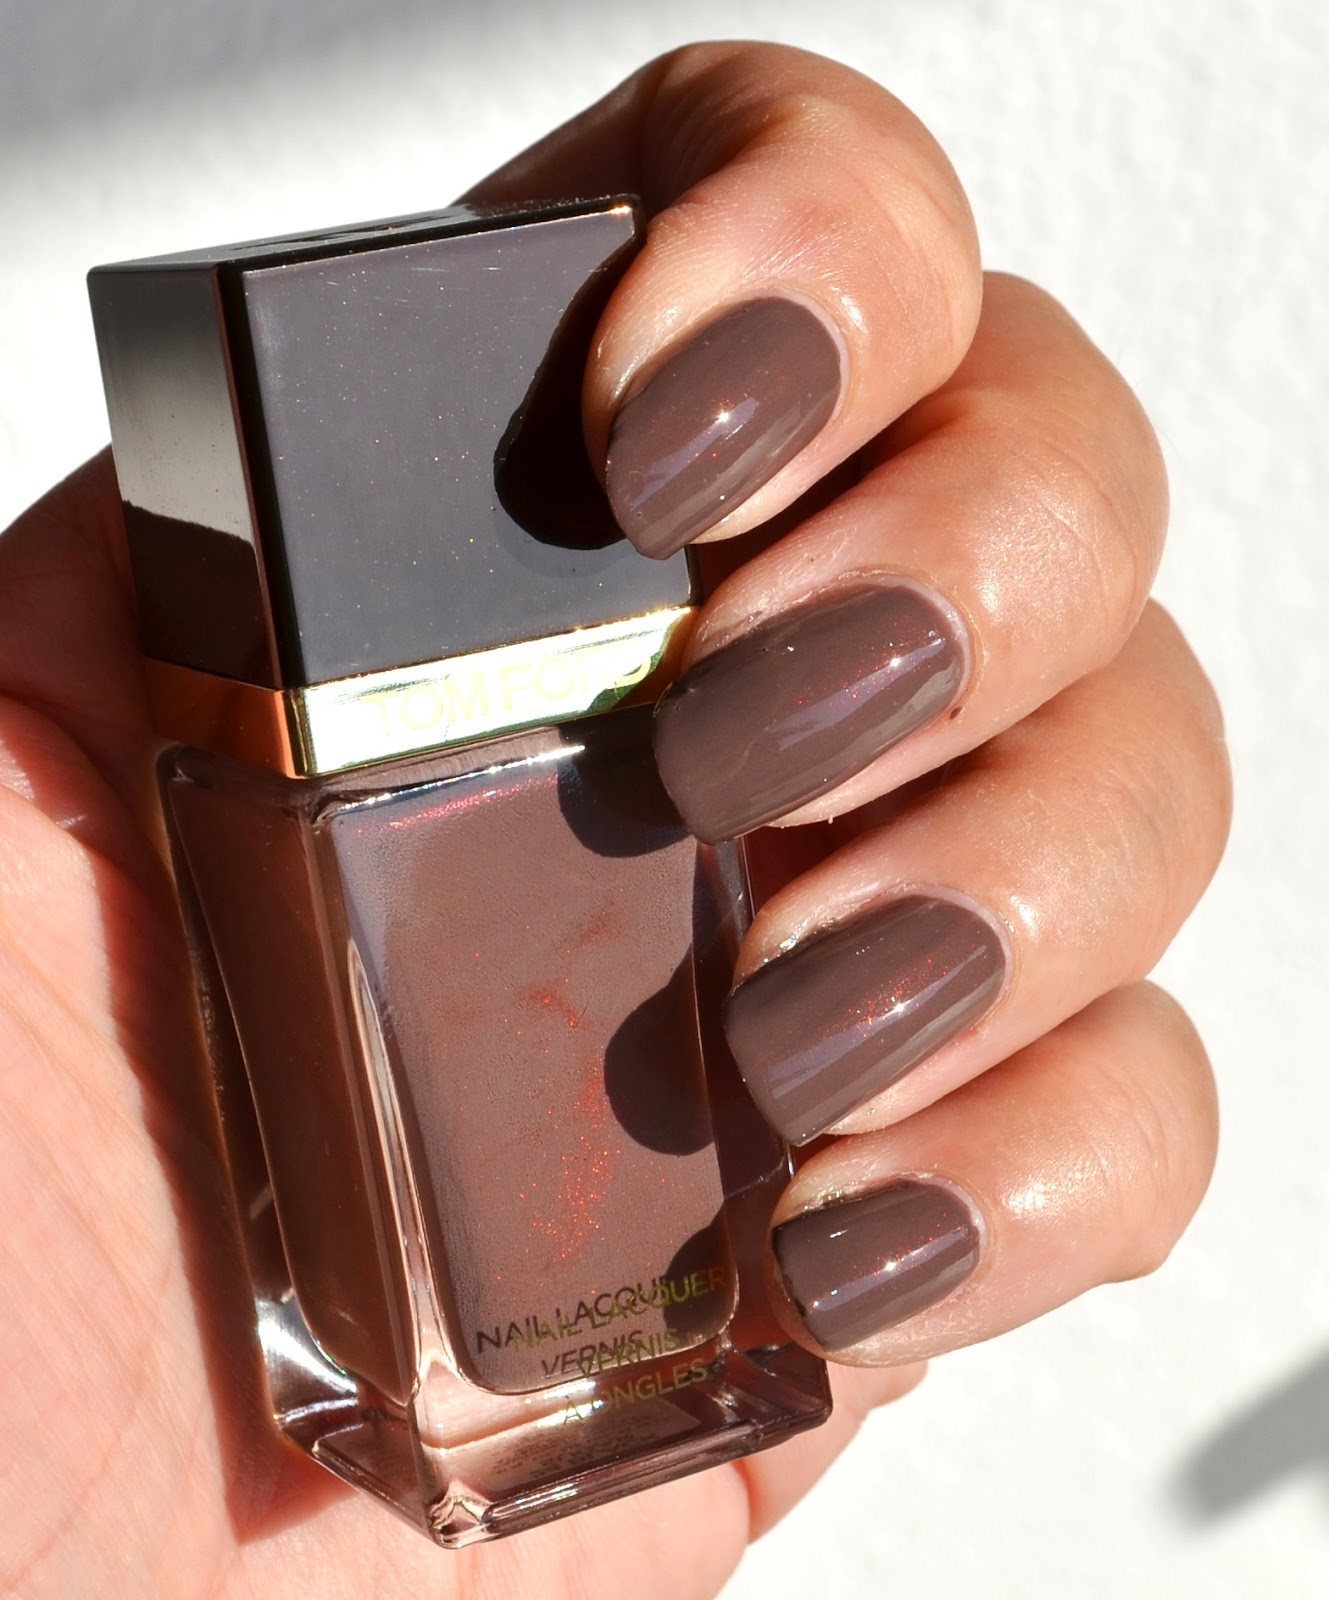 Tom Ford Nail Lacquer #24 Black Sugar, #25 Show Me The Pink from ...